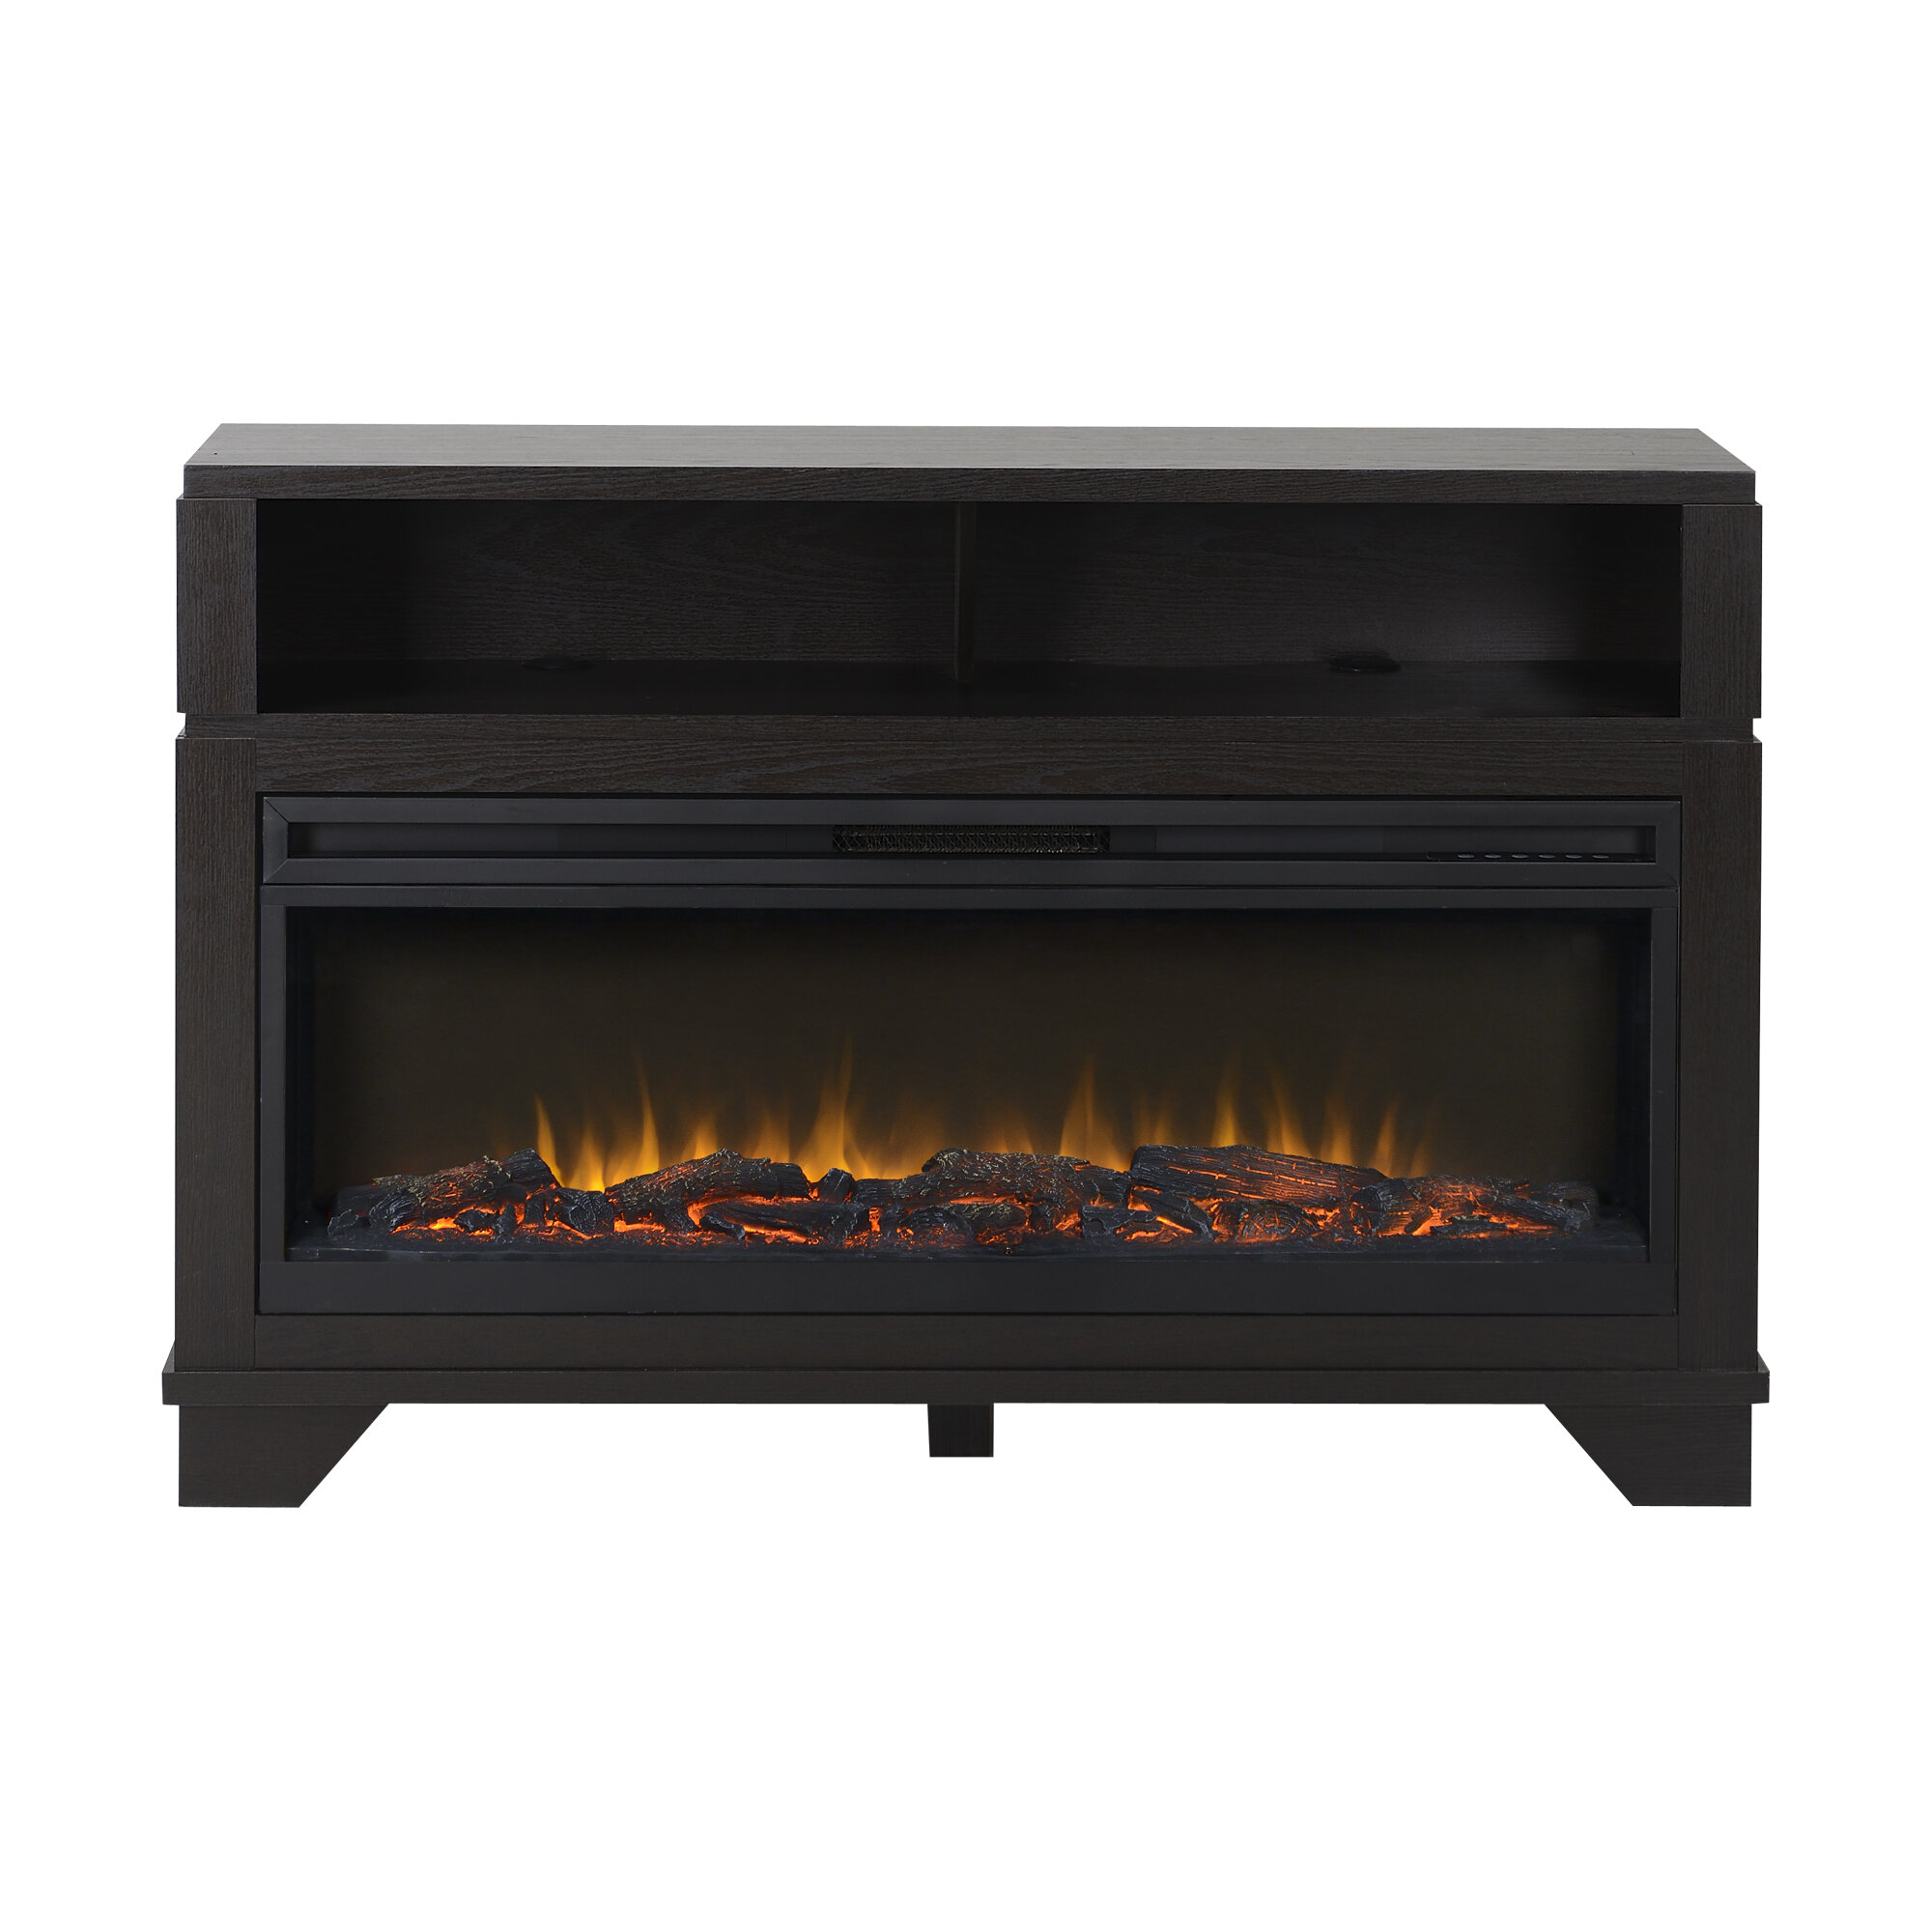 Homestar Nereto Tv Stand With Electric Fireplace Ebay